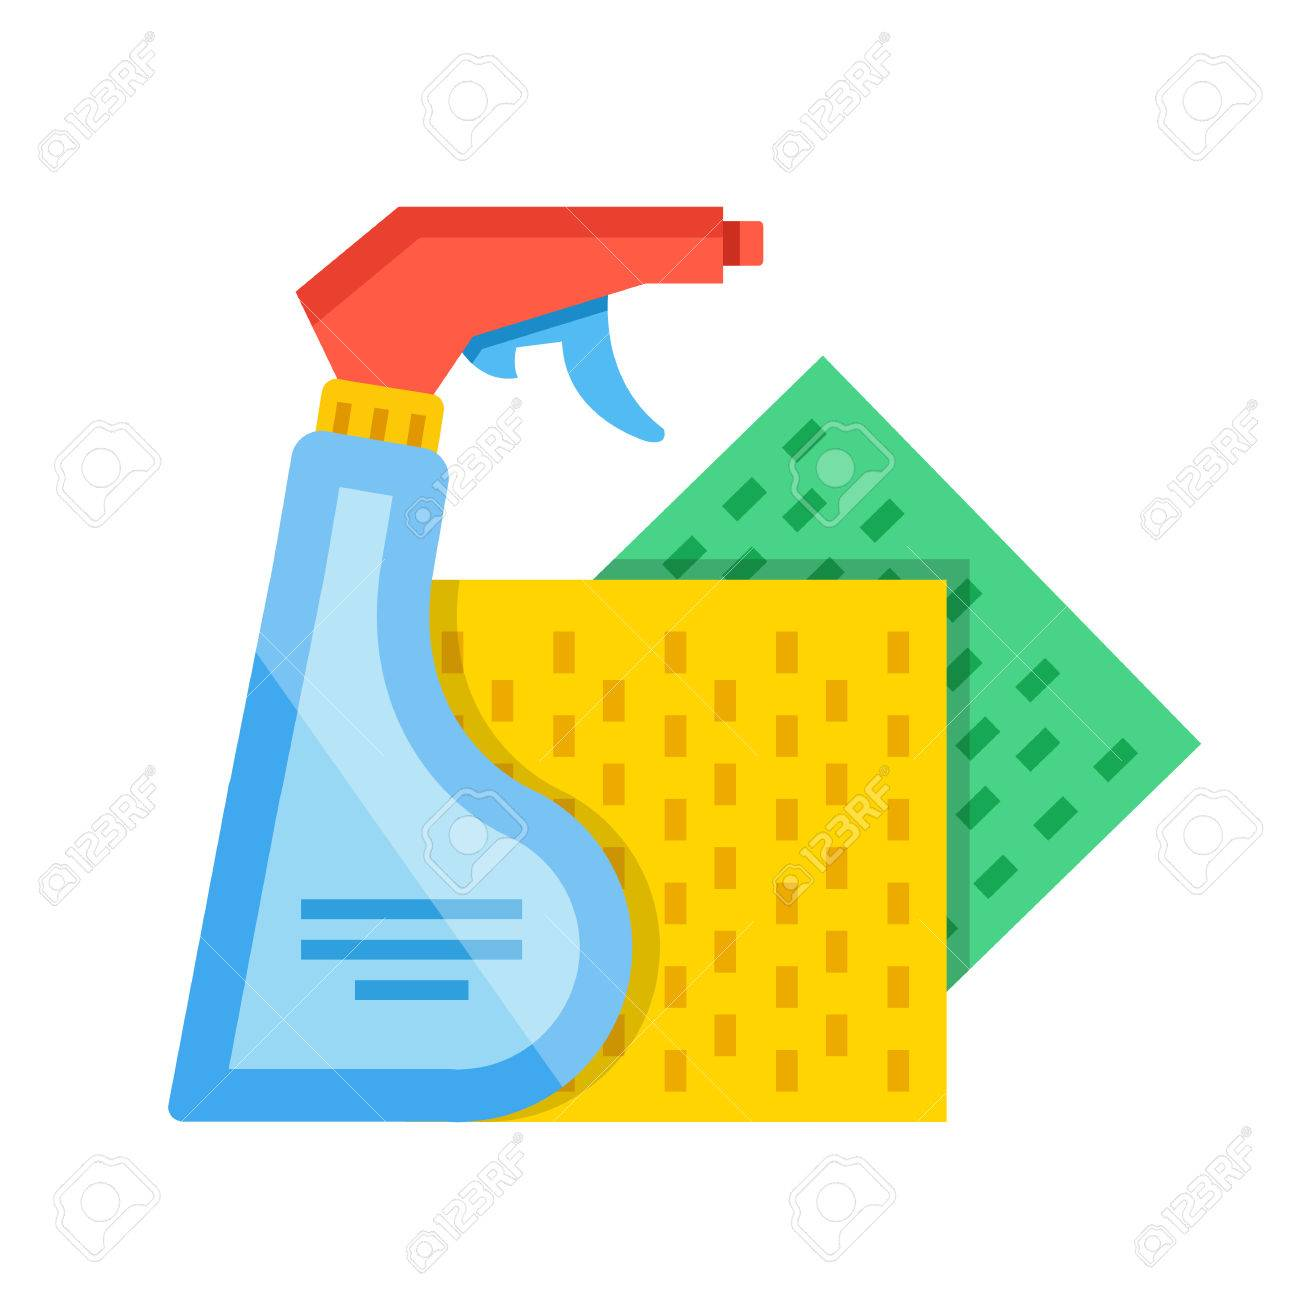 Sponge diagram of modern diy wiring diagrams detergent spray bottle and green and yellow sponge cloths cleaning rh 123rf com sponge diagram no labels syconoid sponge diagram ccuart